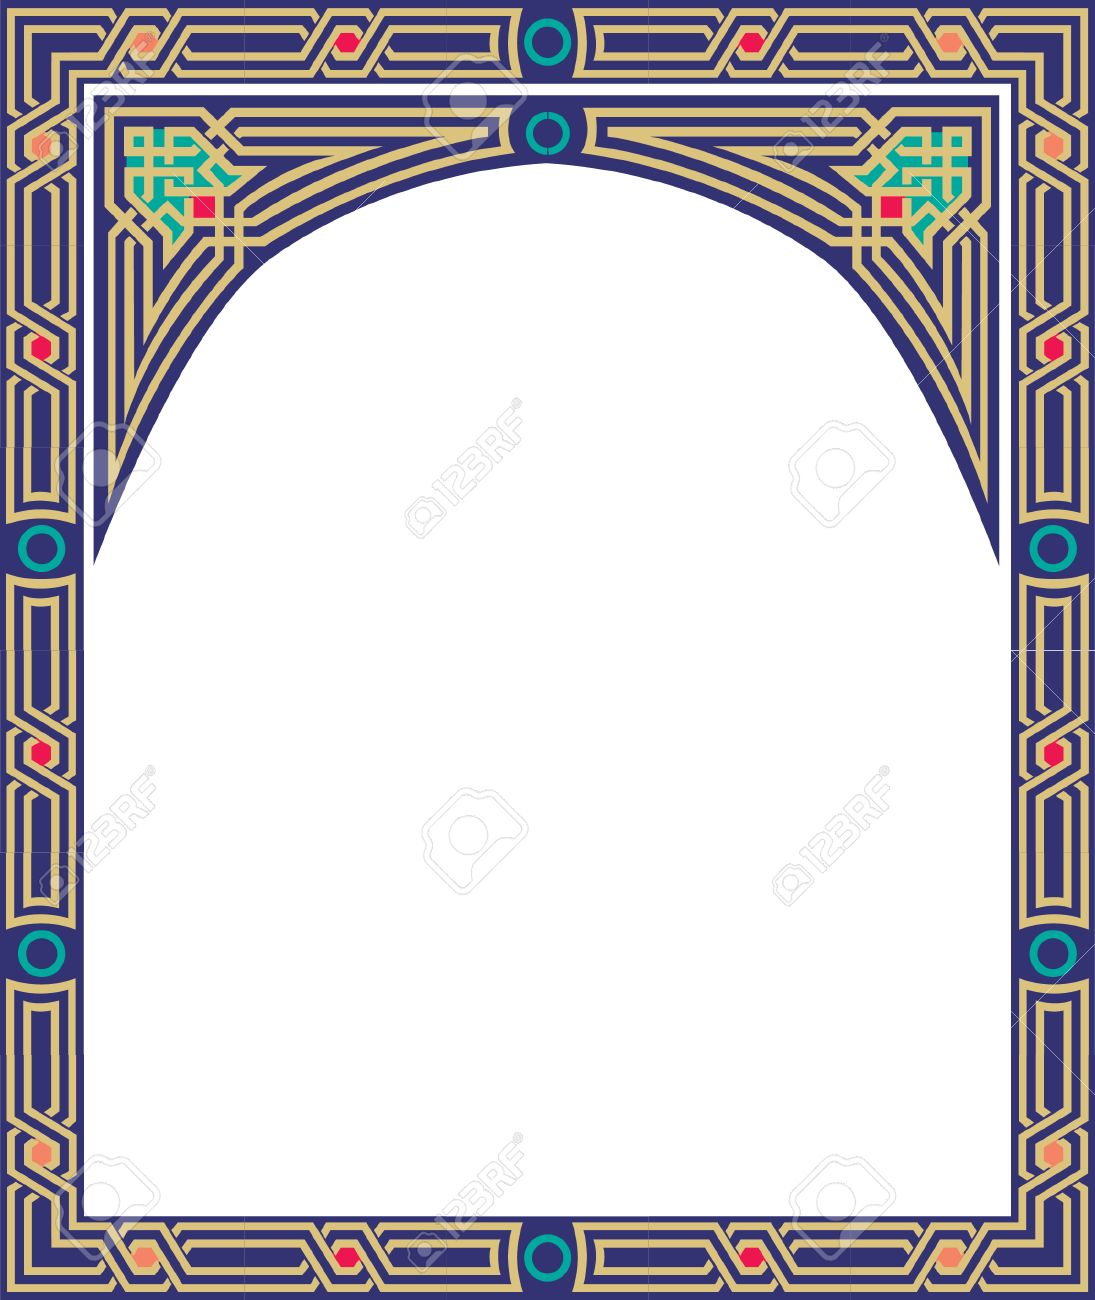 Islamic style border frame with elegant vector lines Stock Vector - 23185777